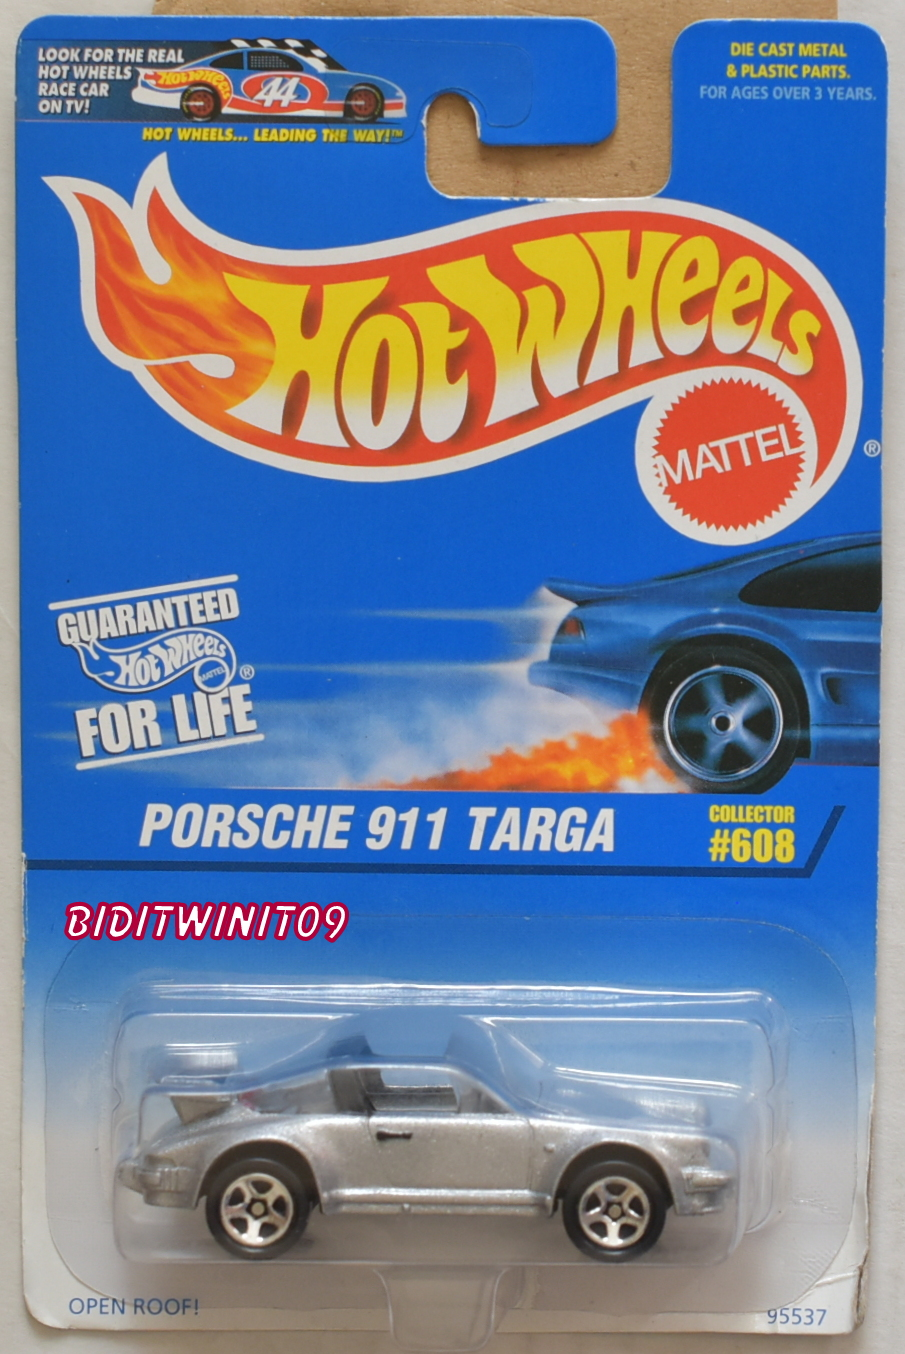 HOT WHEELS 1997 PORSCHE 911 TARGA COLLECTOR #608 SILVER